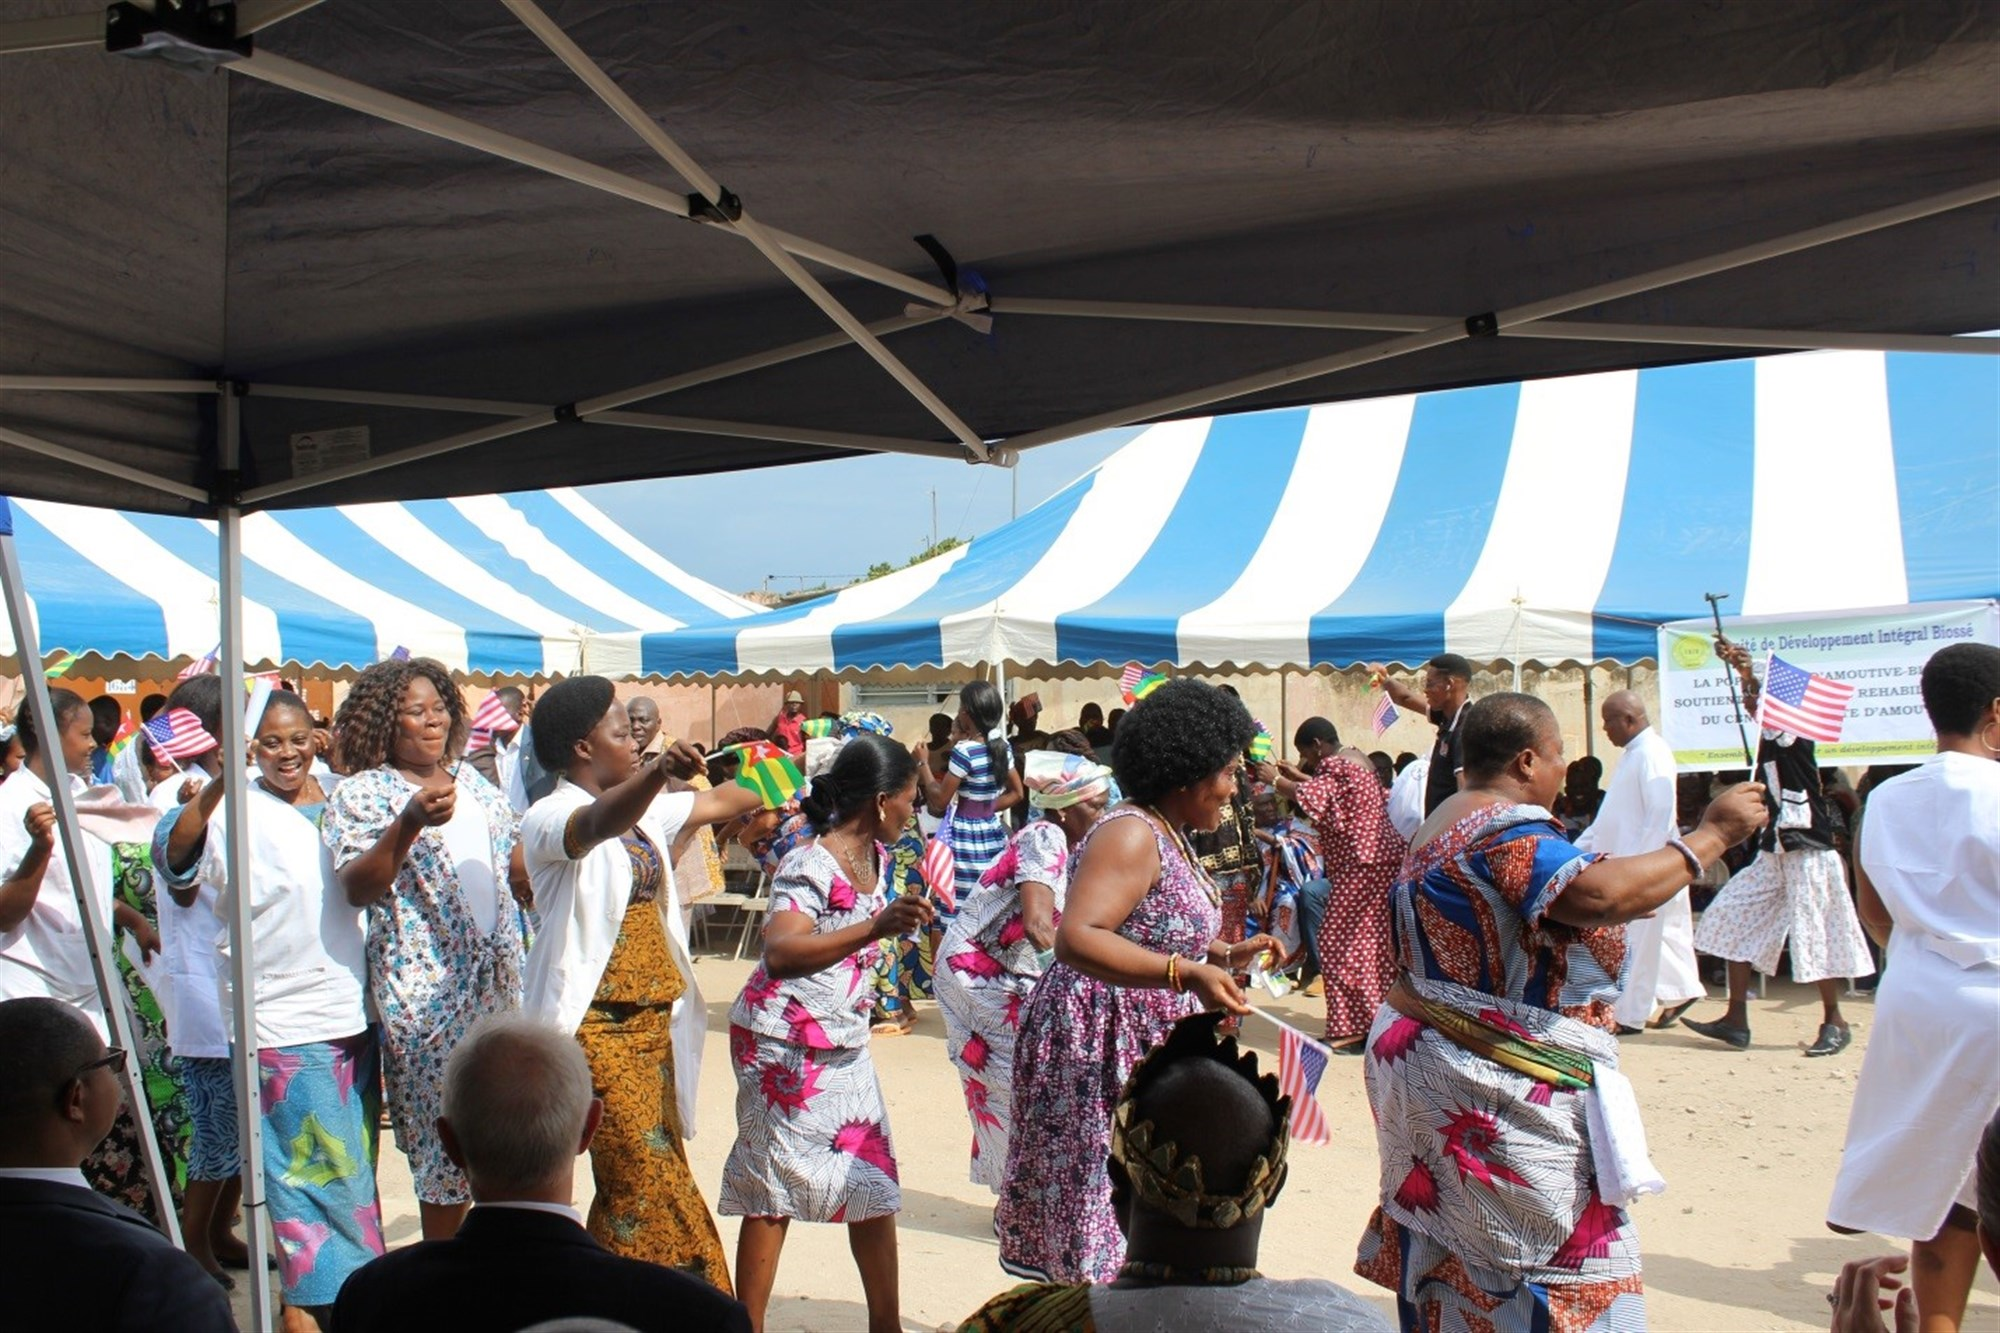 People dance during a ceremony to mark the start of construction on a healthcare facility for women in Amoutivé, Togo, May 26, 2015. U.S. Africa Command funded the project through the Humanitarian and Civic Assistance Program. Photo by Lauren McCaughey, U.S. Embassy Lomé.